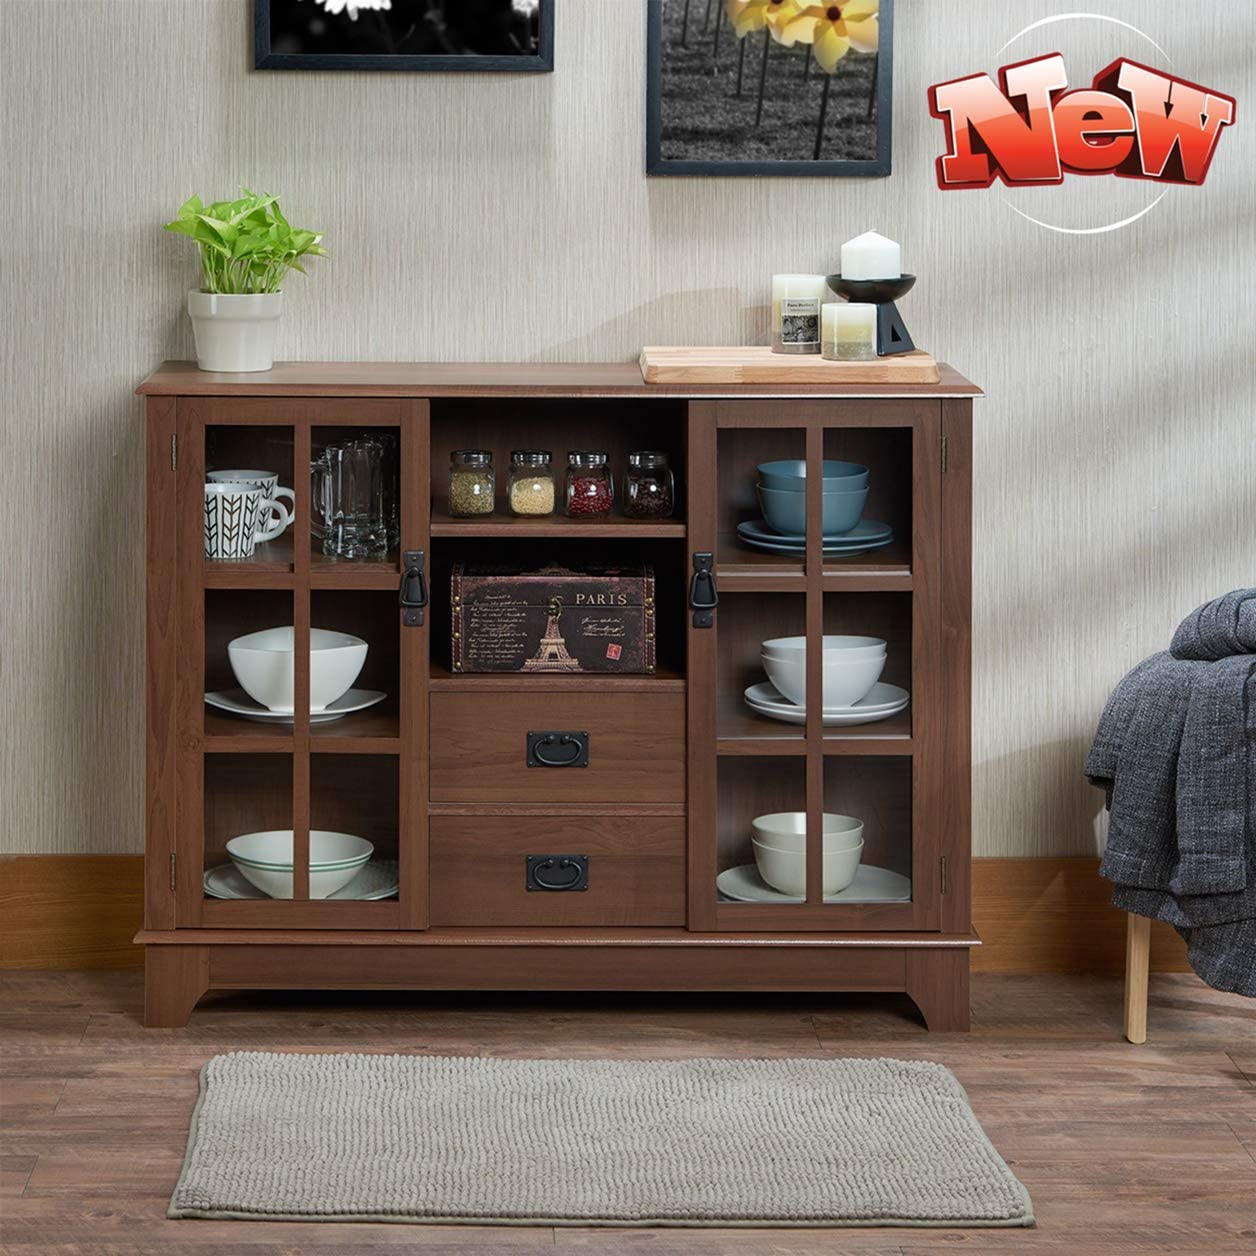 Cash special price Ninowokc Newly Upgrade Stronger Storage Sideboard Cabin Buffet 5 ☆ very popular